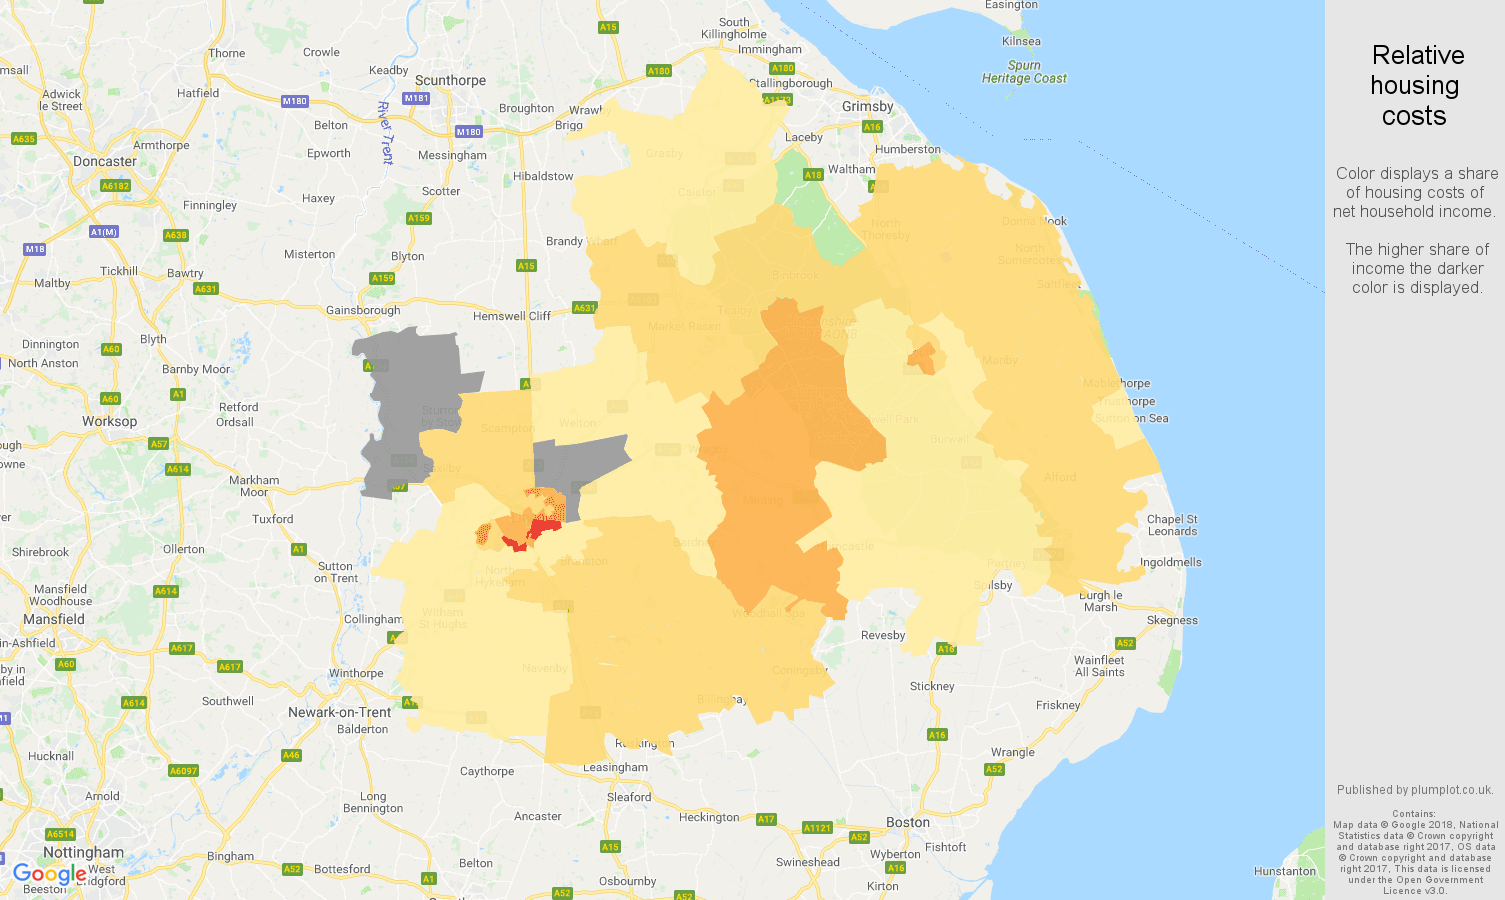 Lincoln relative housing costs map